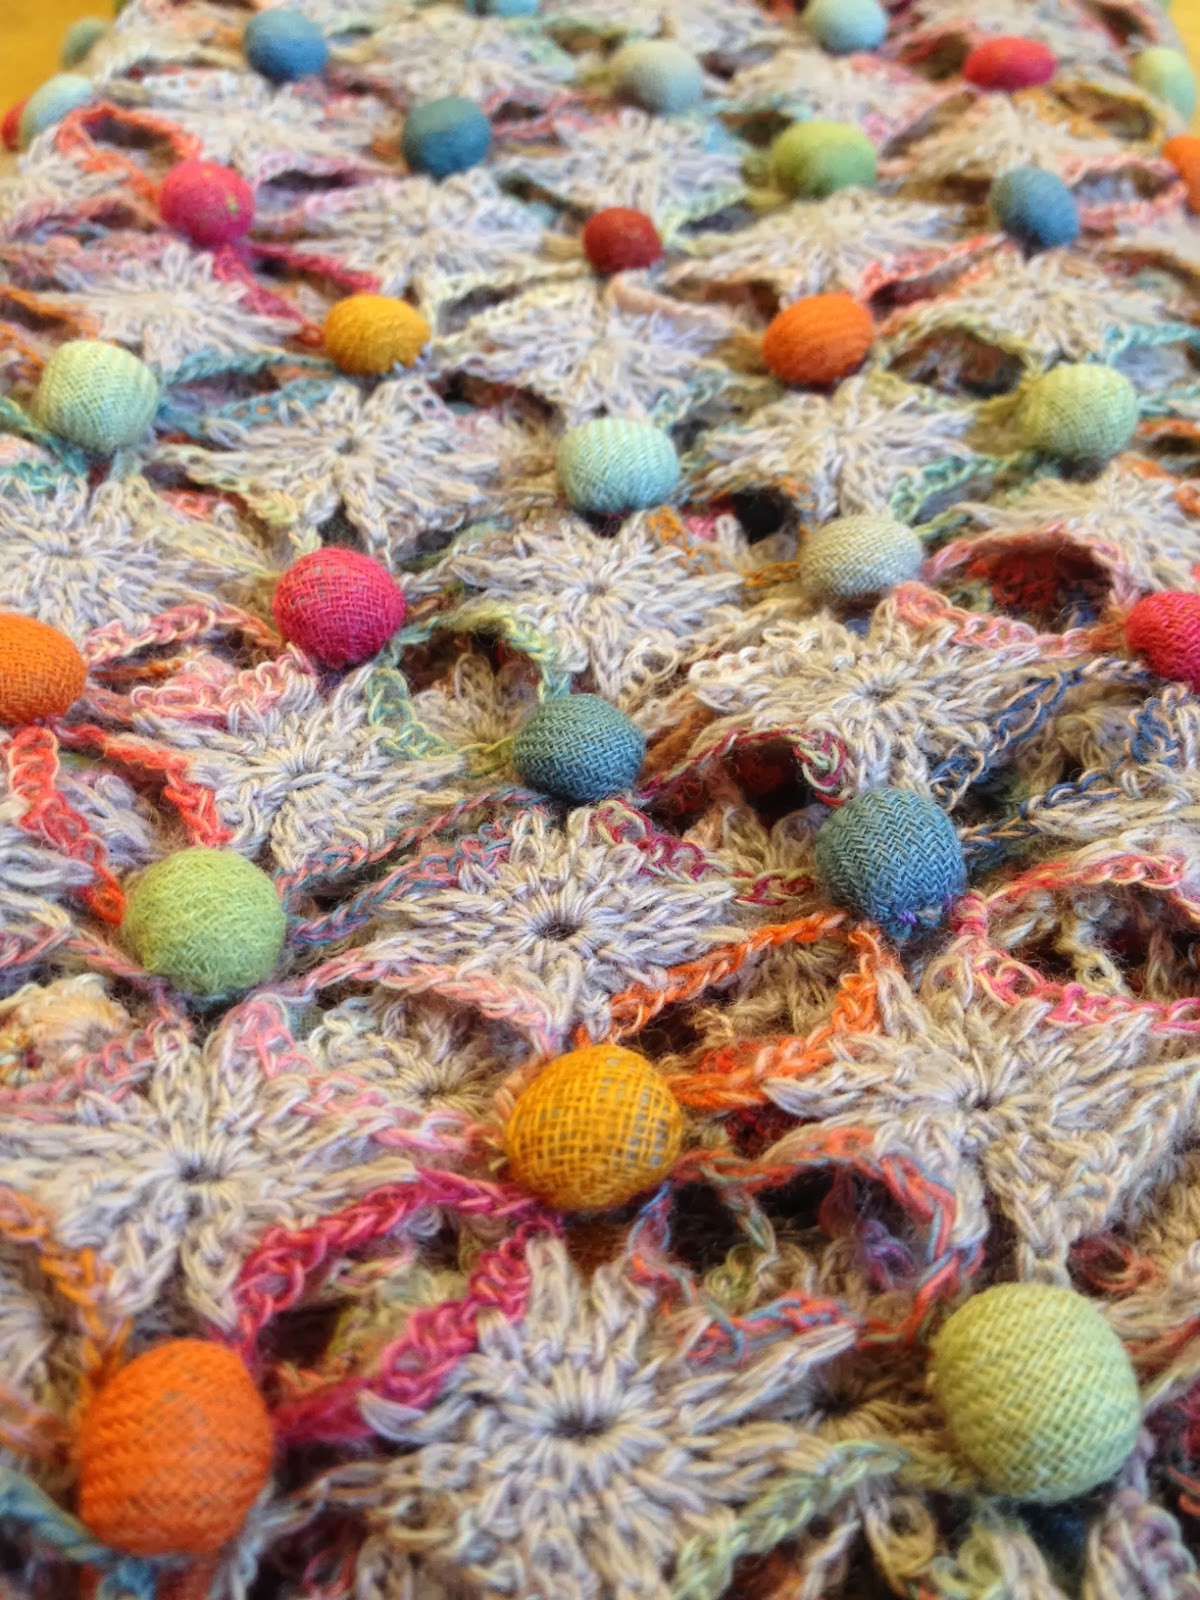 Crochet Accessories New L Uccello Hooray New sophie Digard Scarves and Accessories… Of New 47 Photos Crochet Accessories